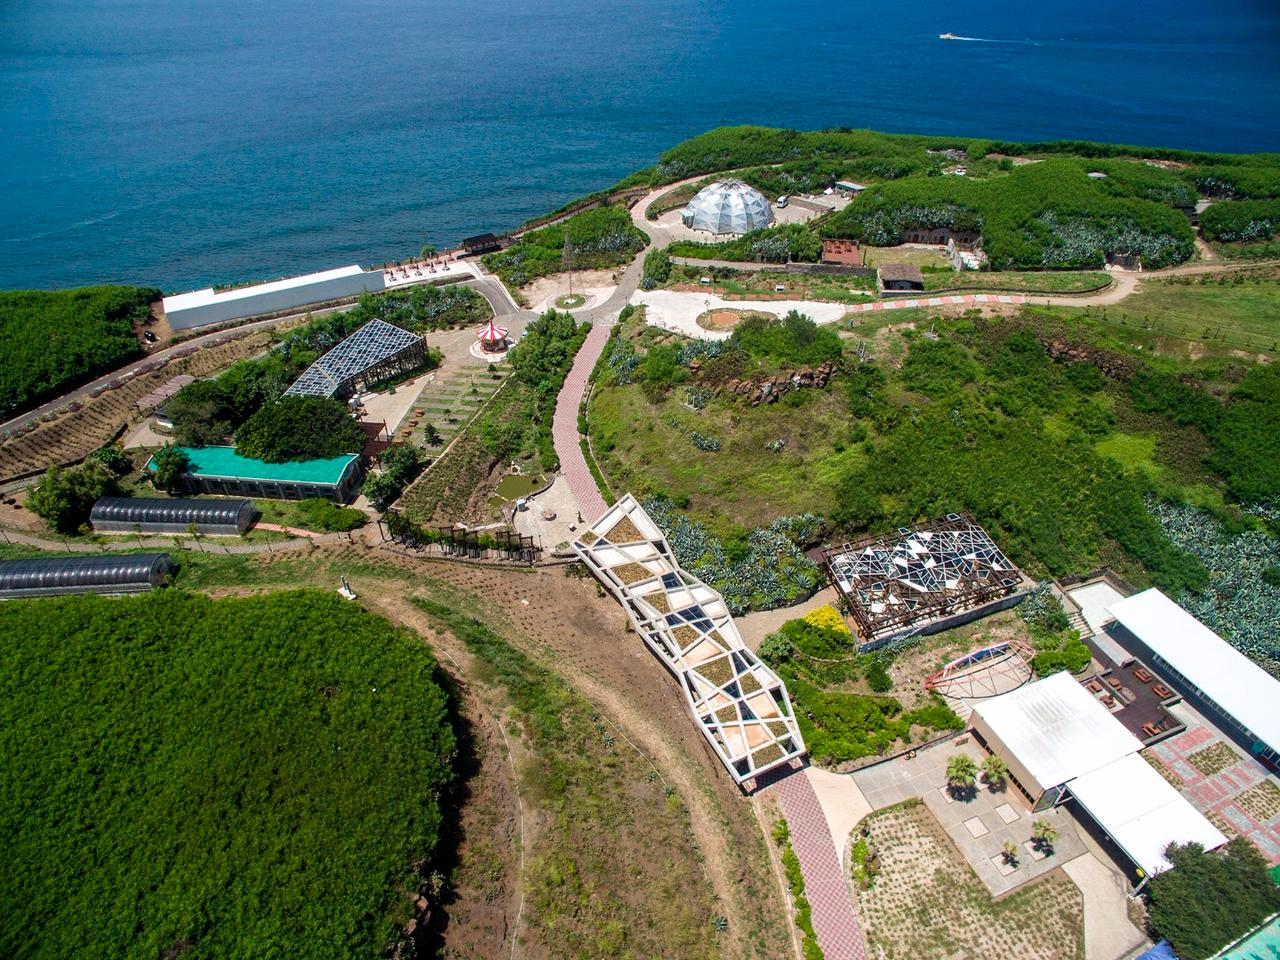 The Penghu Qingwan Cactus Park was restored from an abandoned military base, giving it a new lease on life as a public attraction